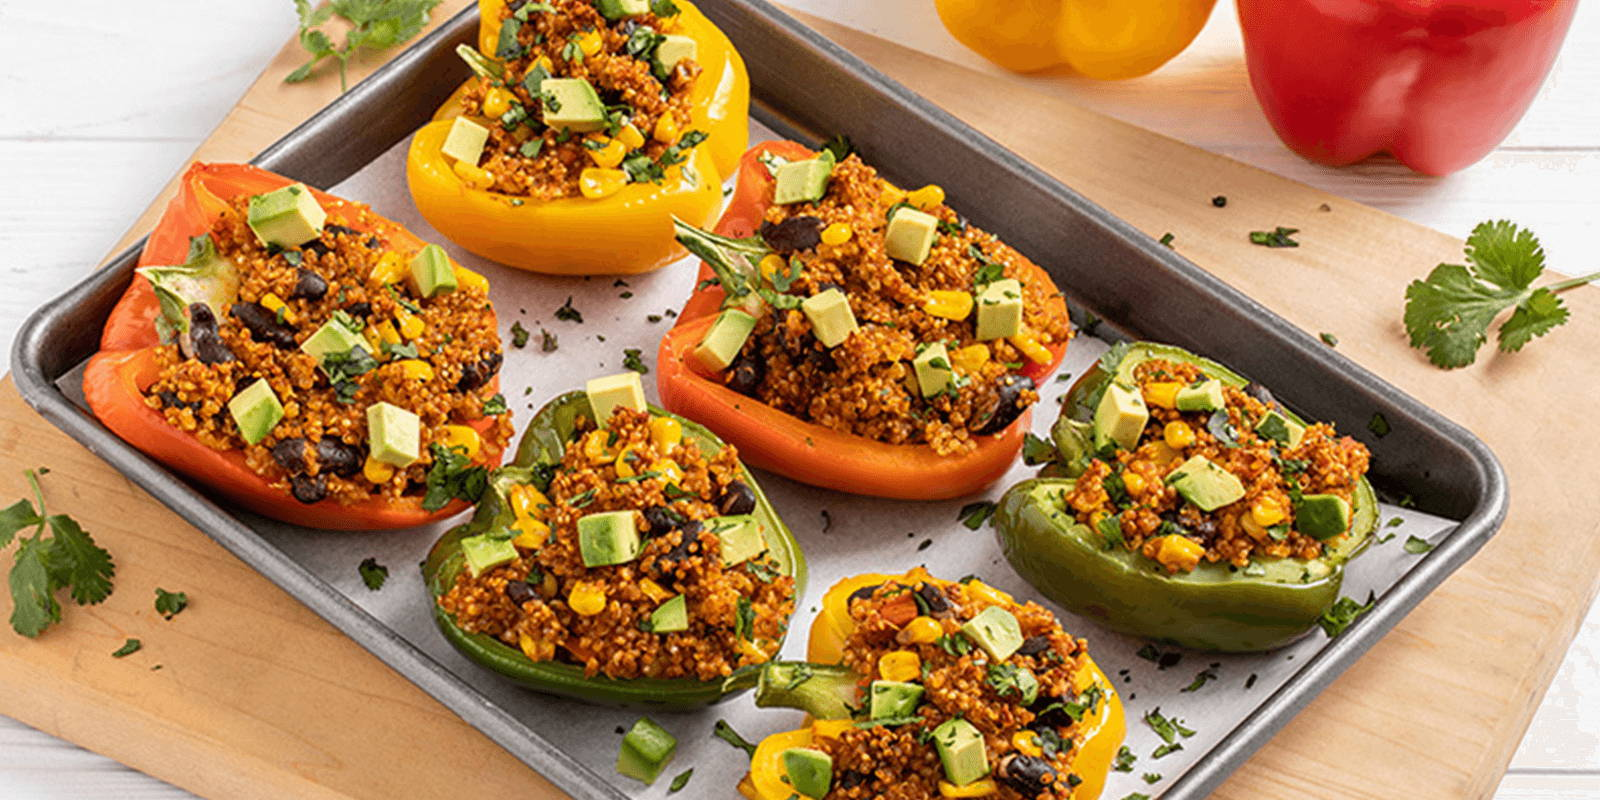 Tray of stuffed bell peppers on a white countertop.